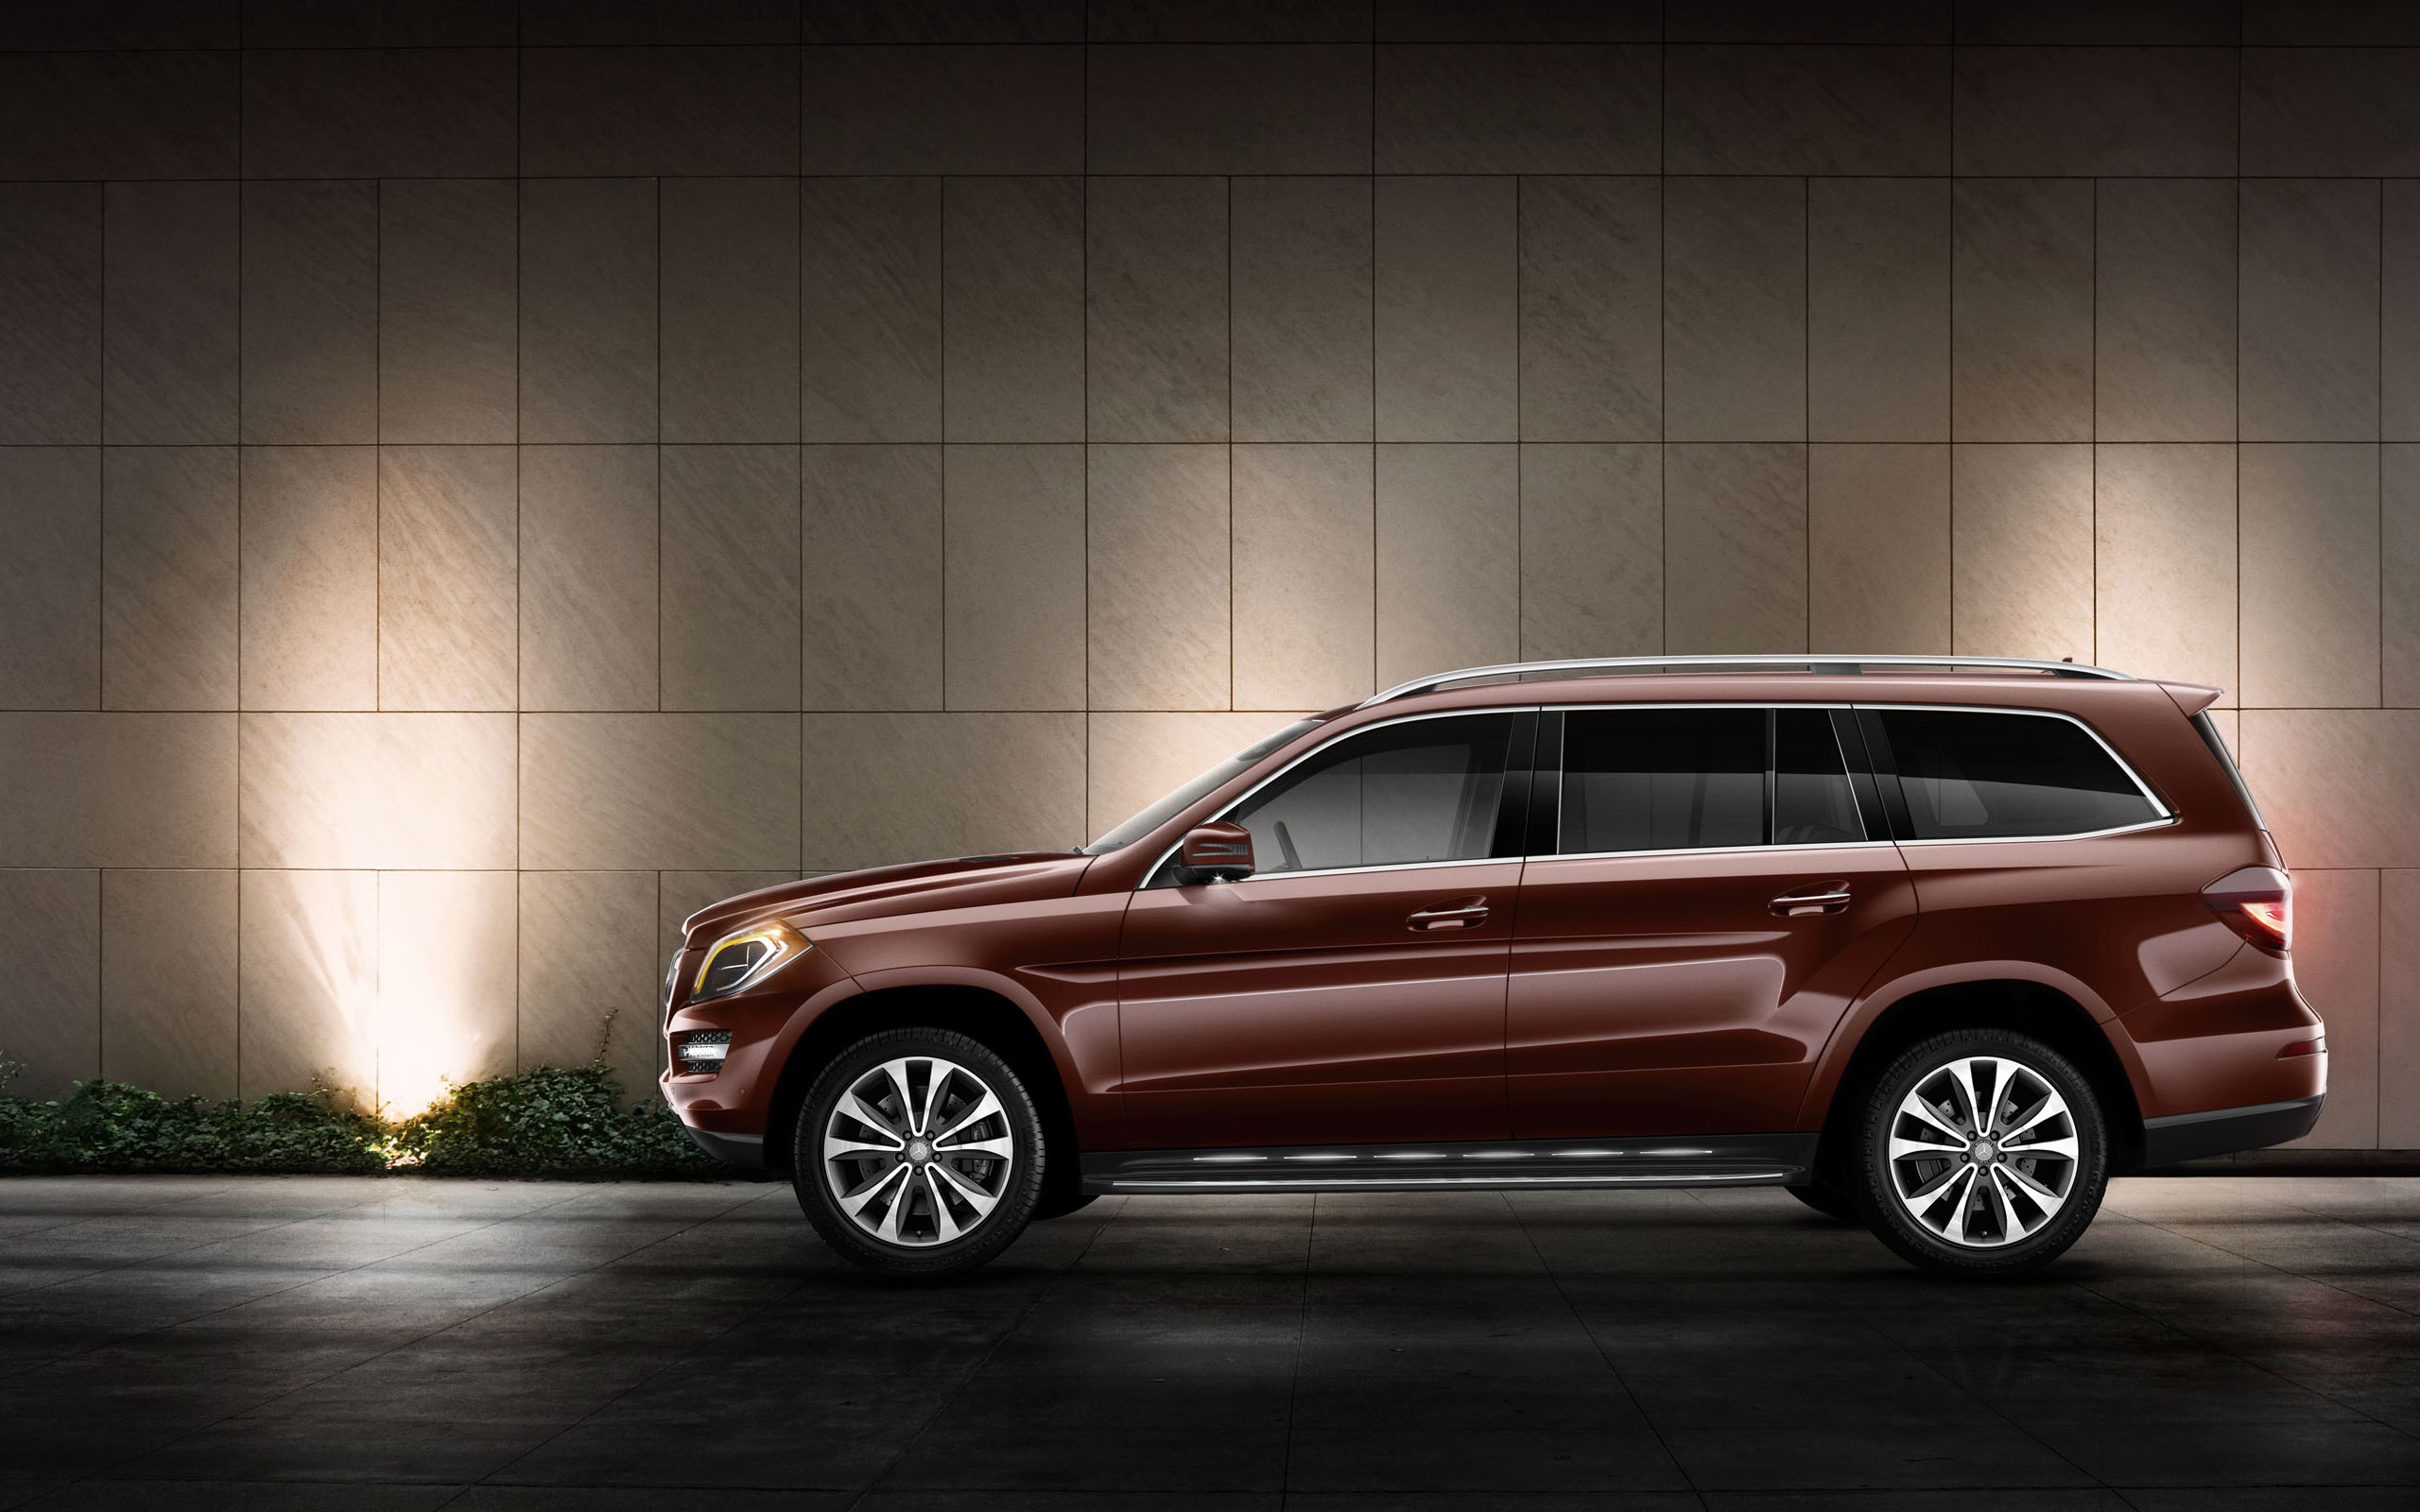 Mercedes benz gl class wallpapers hd full hd pictures for Mercedes benz gl